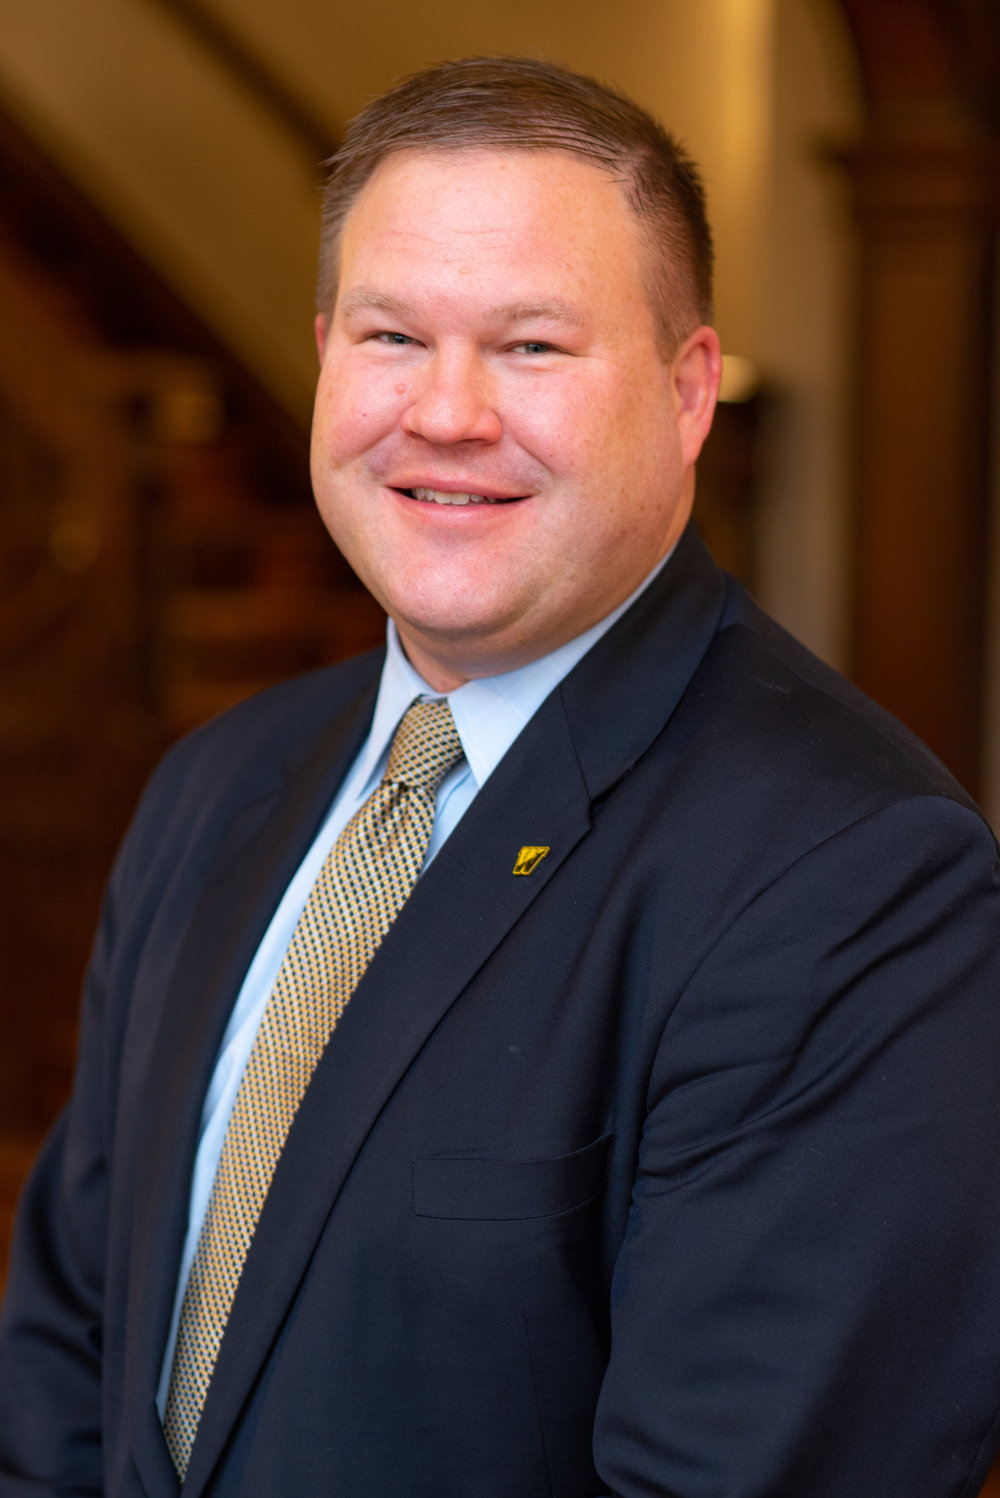 Wayne Webster - Board member  vice president for advancement - the college of wooster